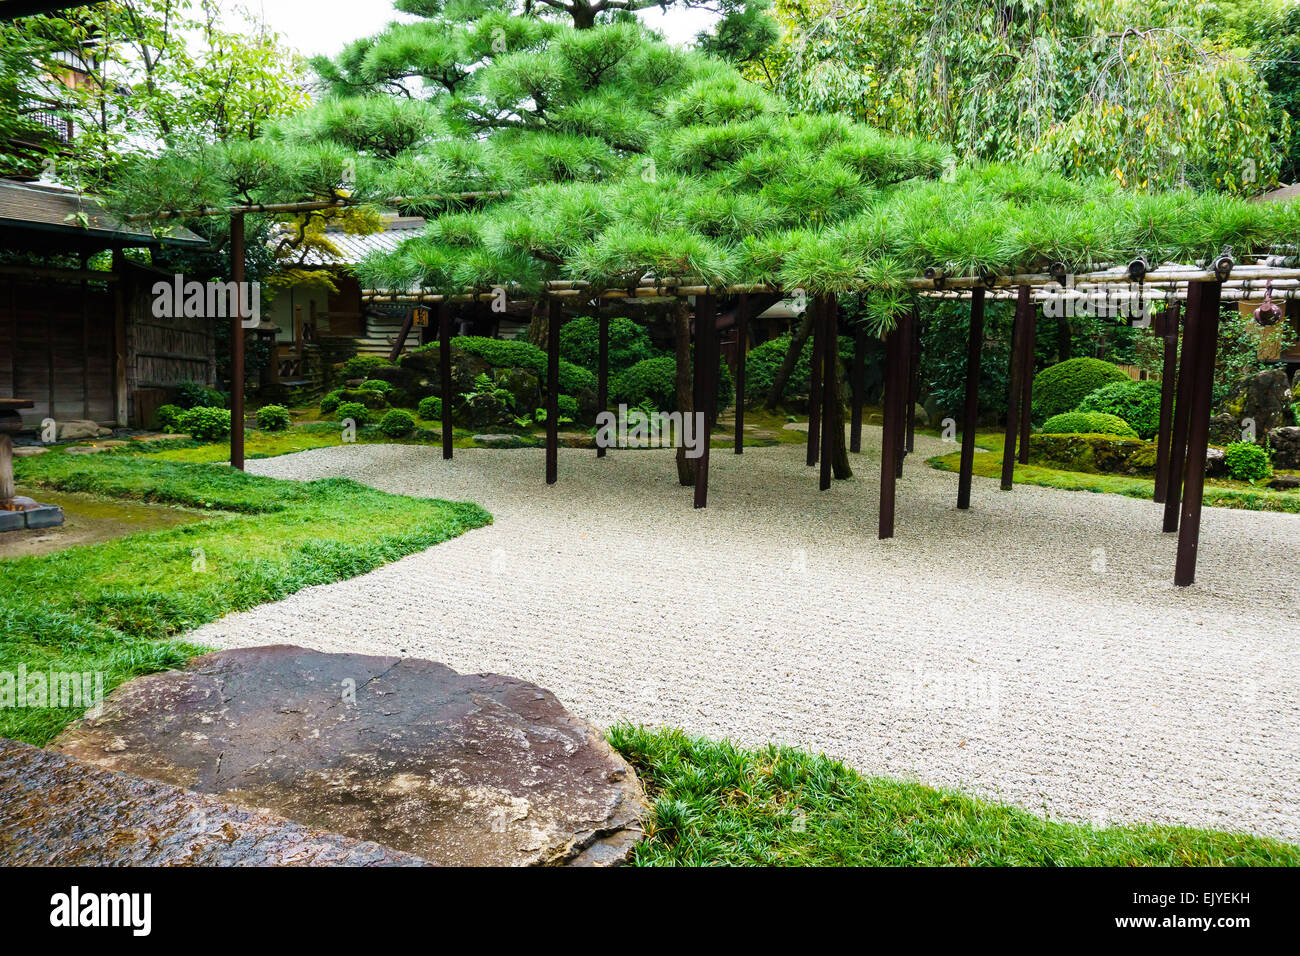 View of a traditional Japanese garden with raked gravel and sacred stone in Kyoto, Japan - Stock Image